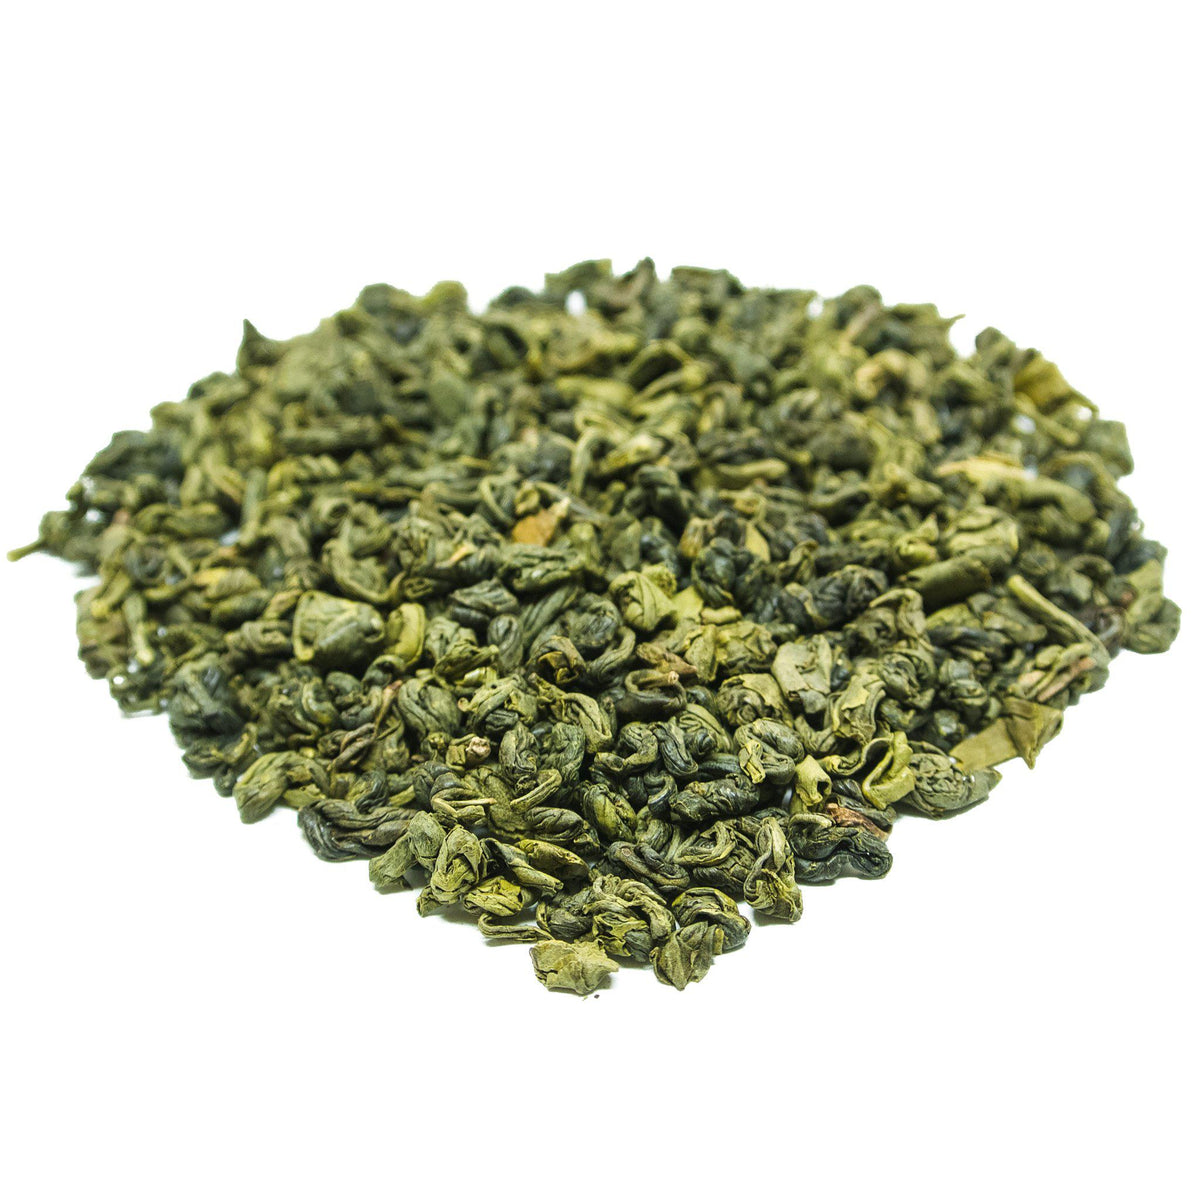 Gunpowder green Tea Organic - VIRTUE Tea